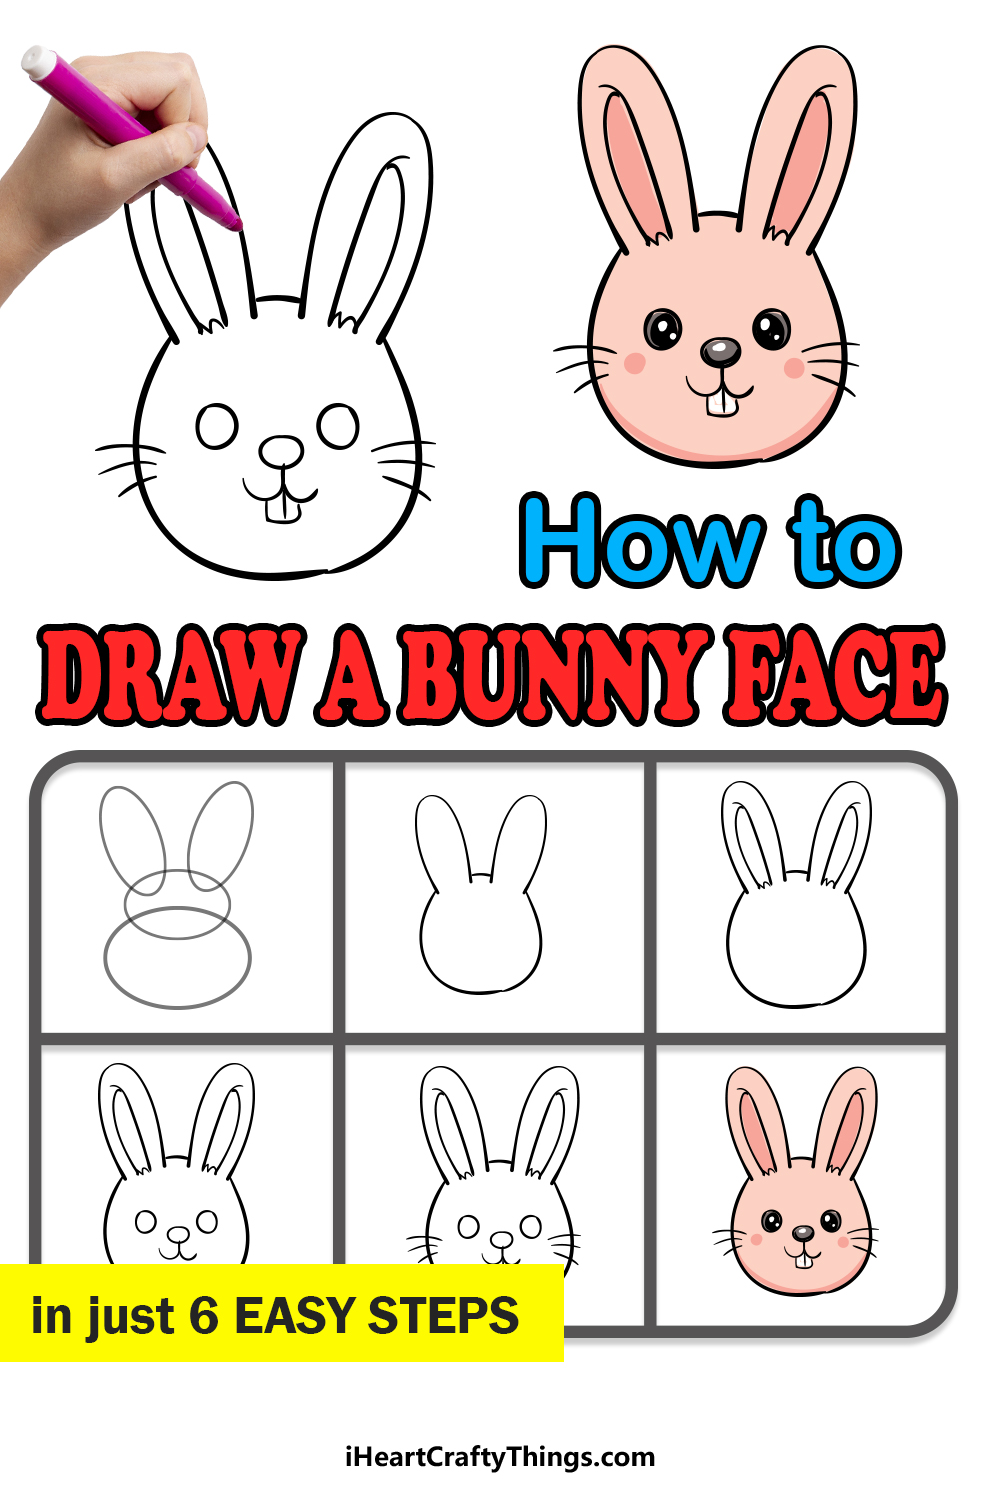 how to draw a bunny face in 6 easy steps